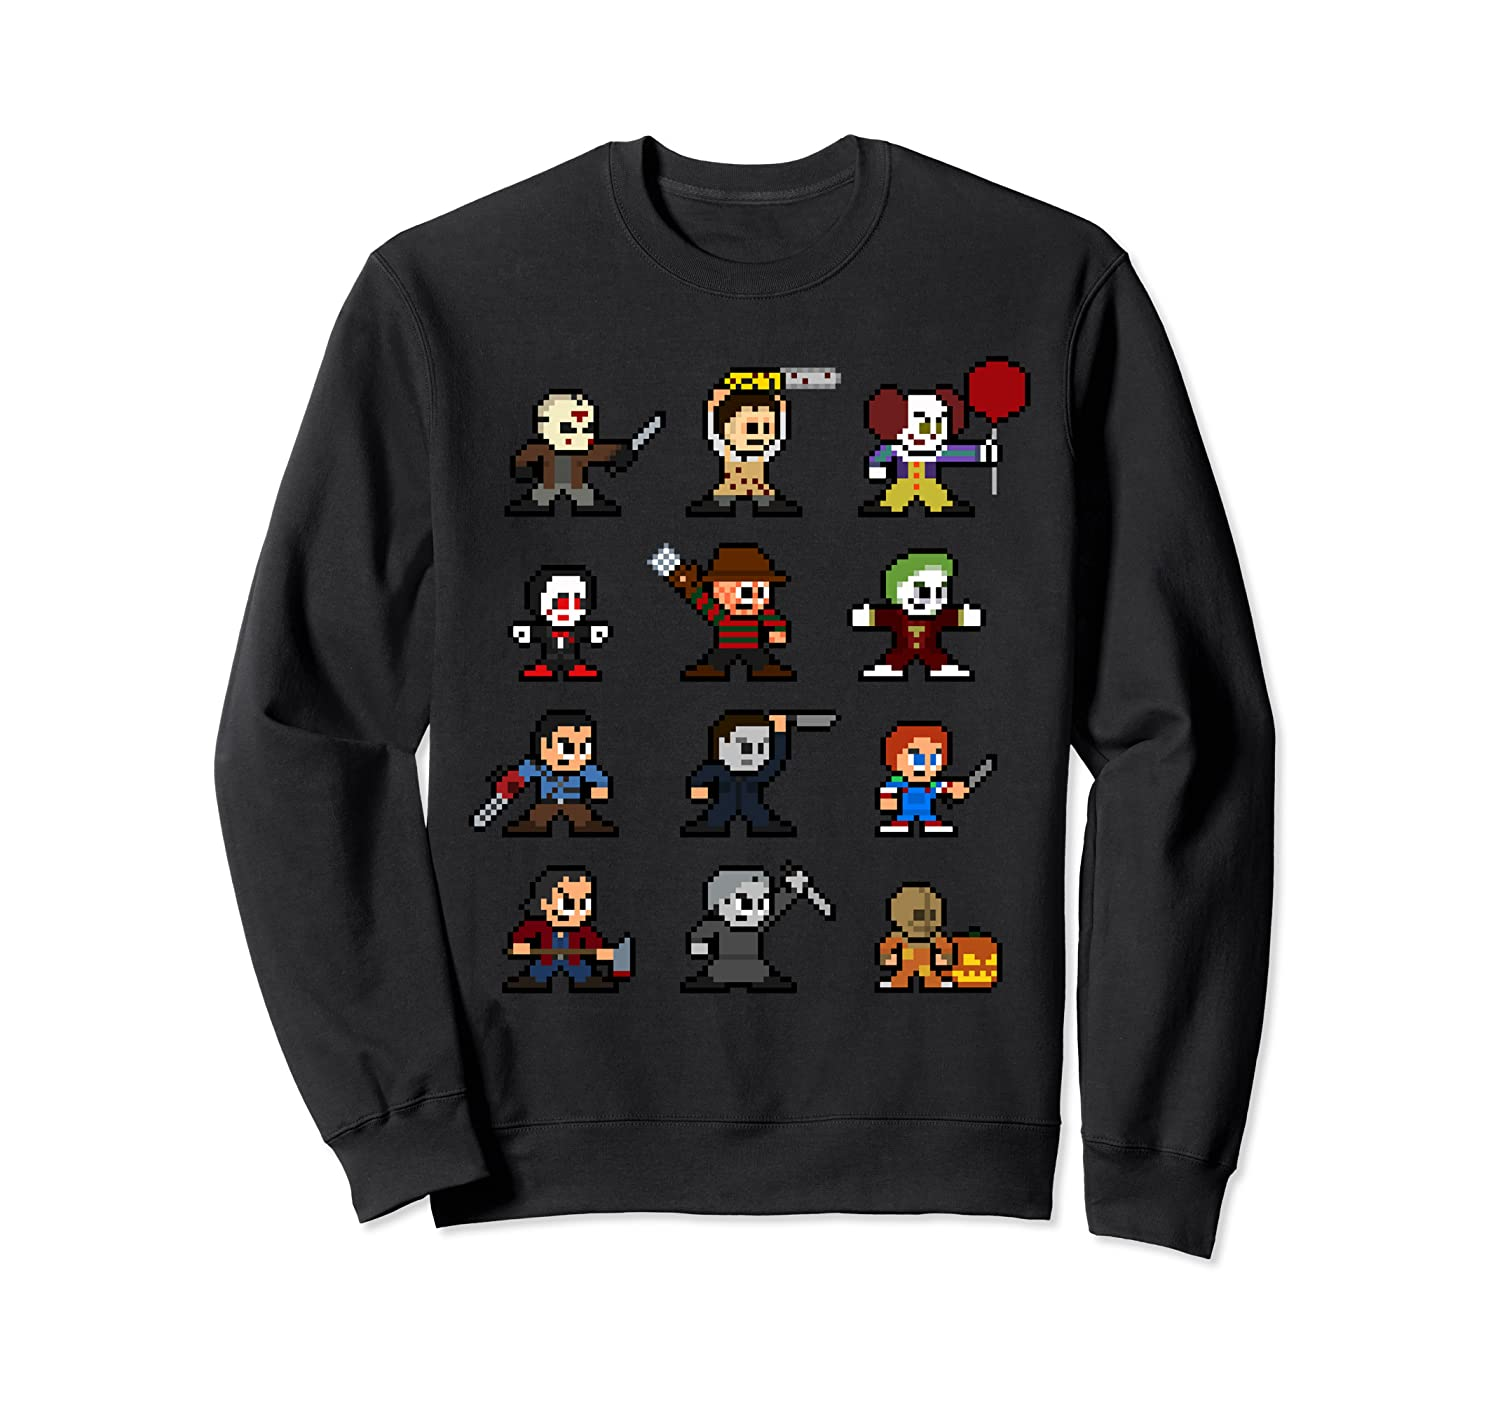 Friends Pixel Halloween Icons Scary Horror Movies Shirts